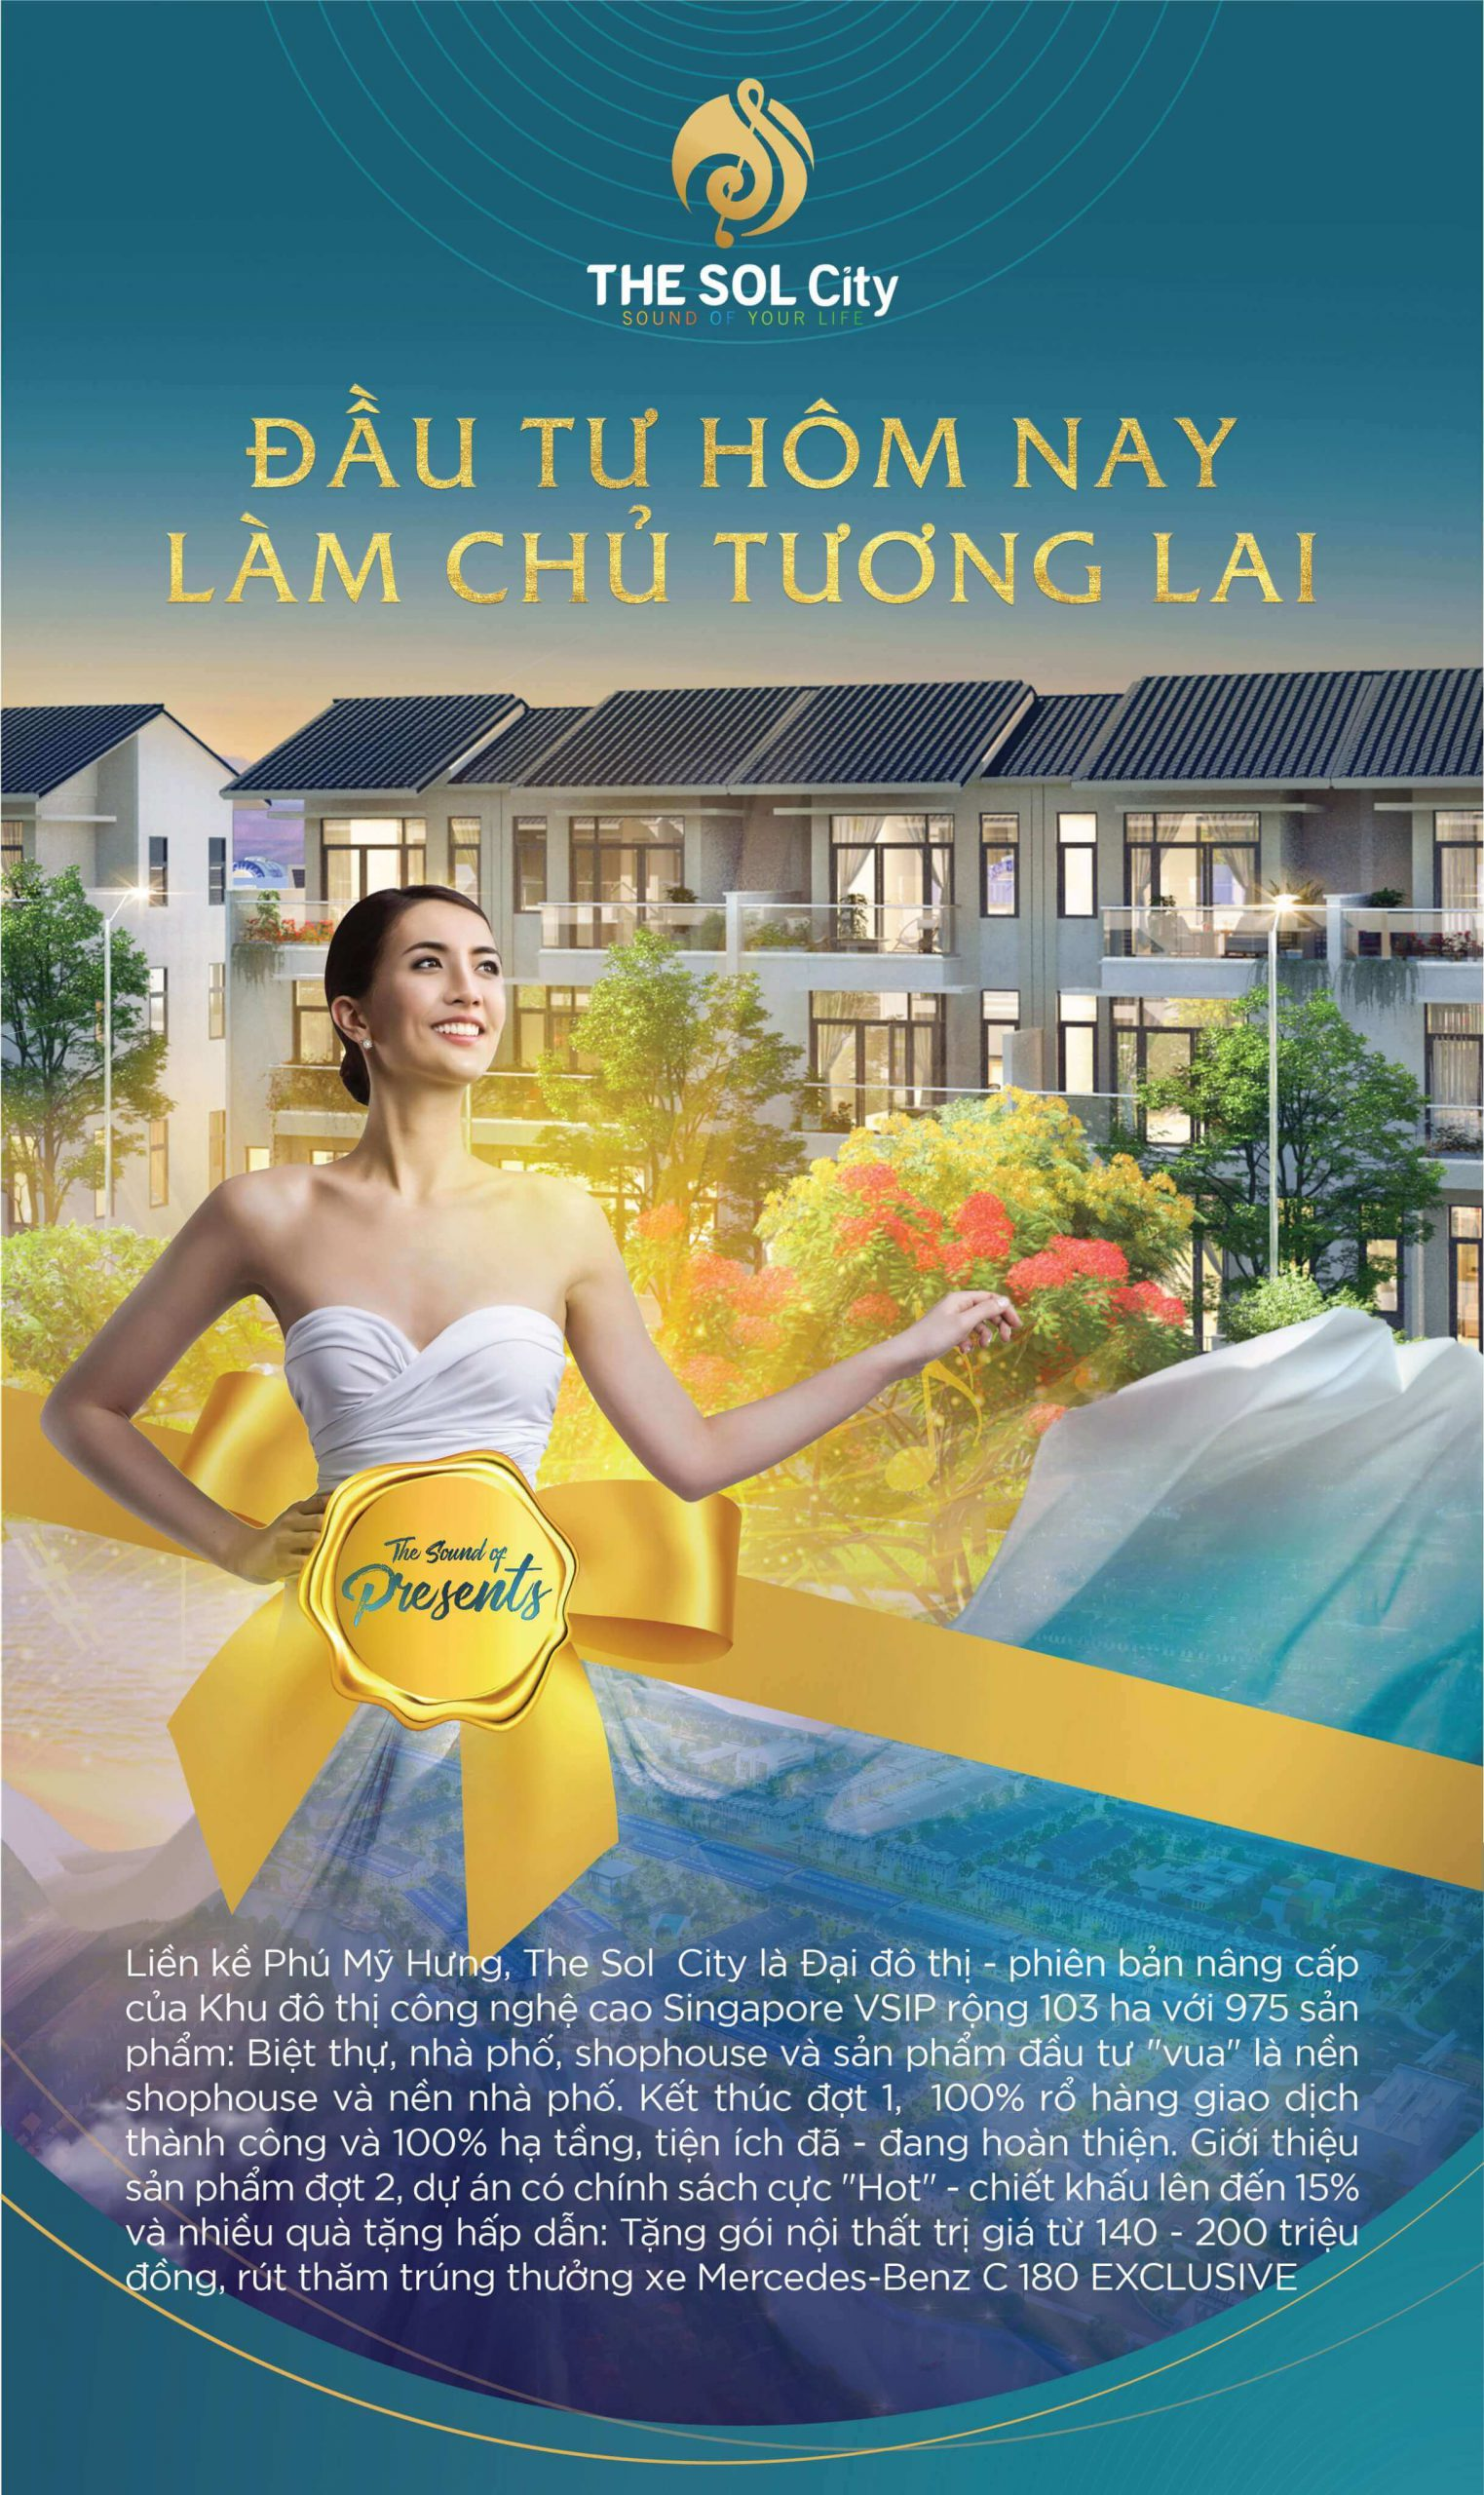 the sol city thắng lợi group